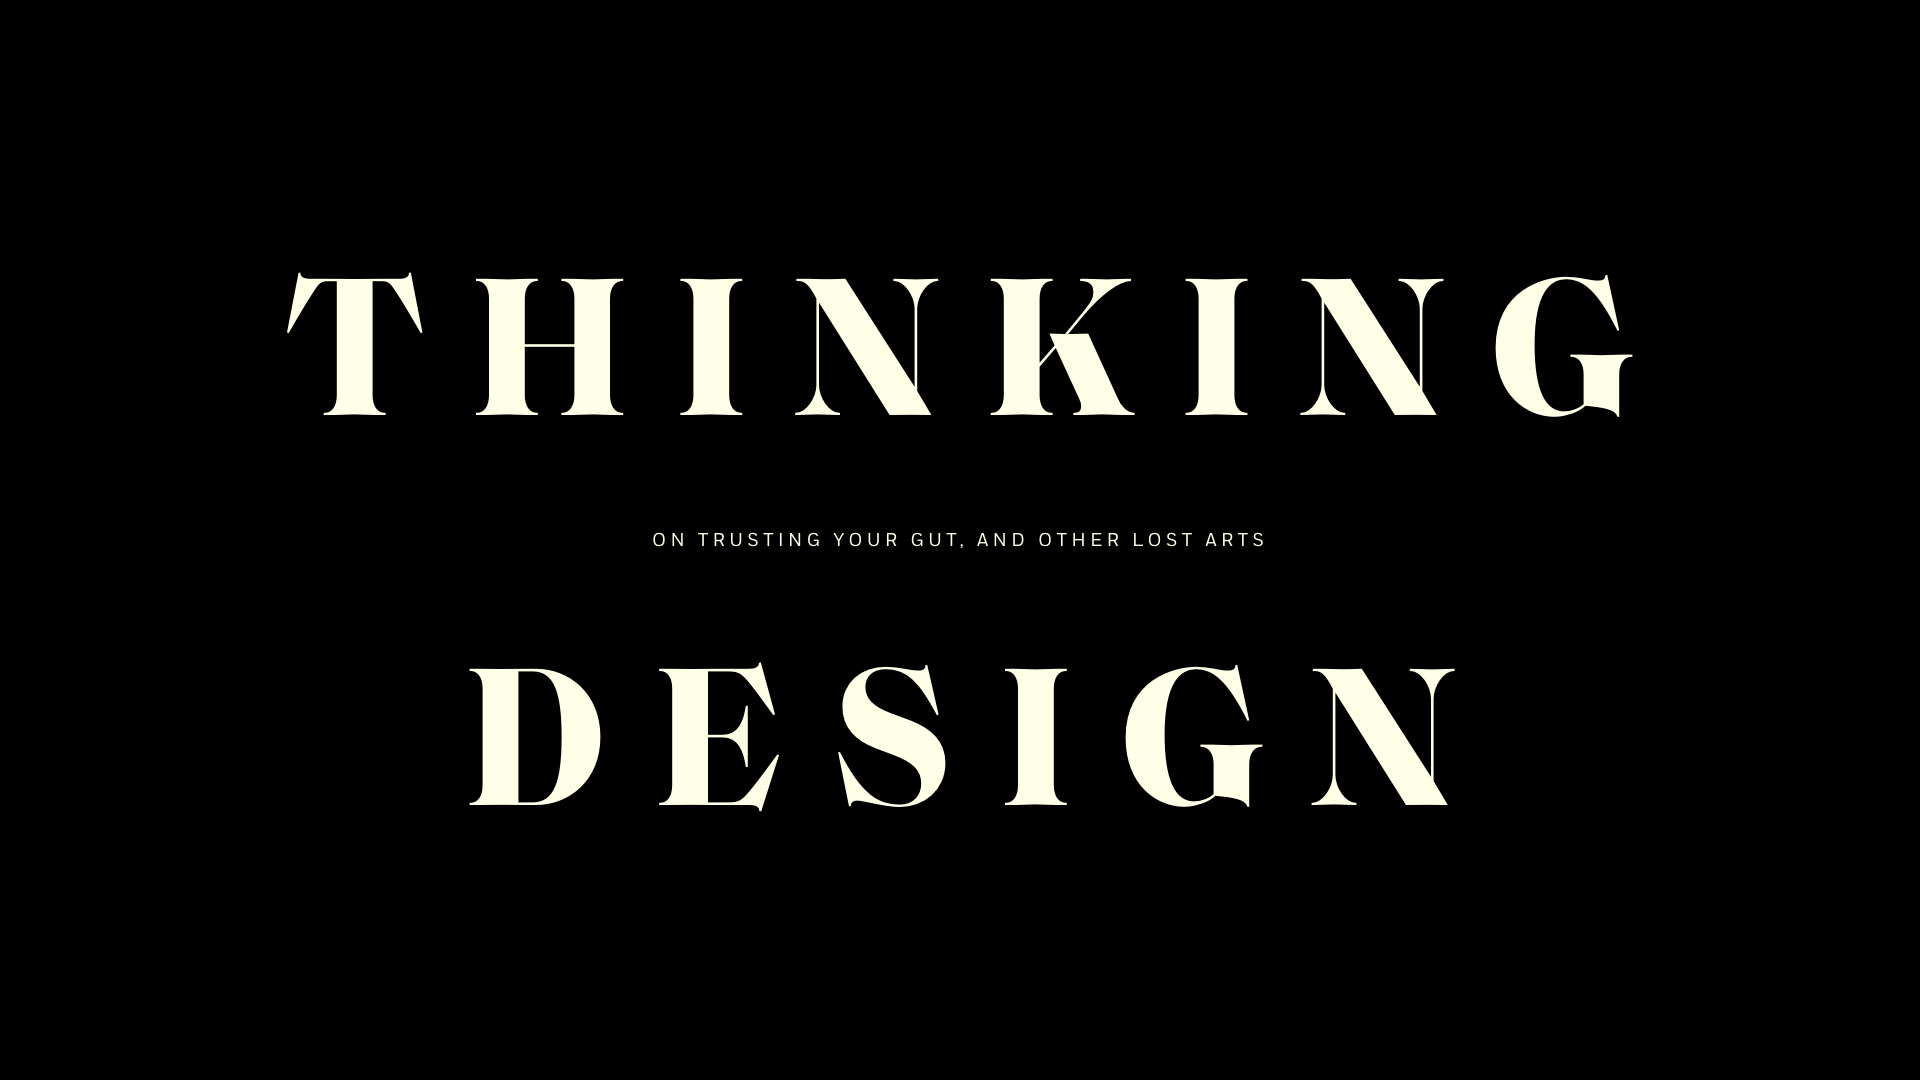 thinking-design-shane-bzdok.png